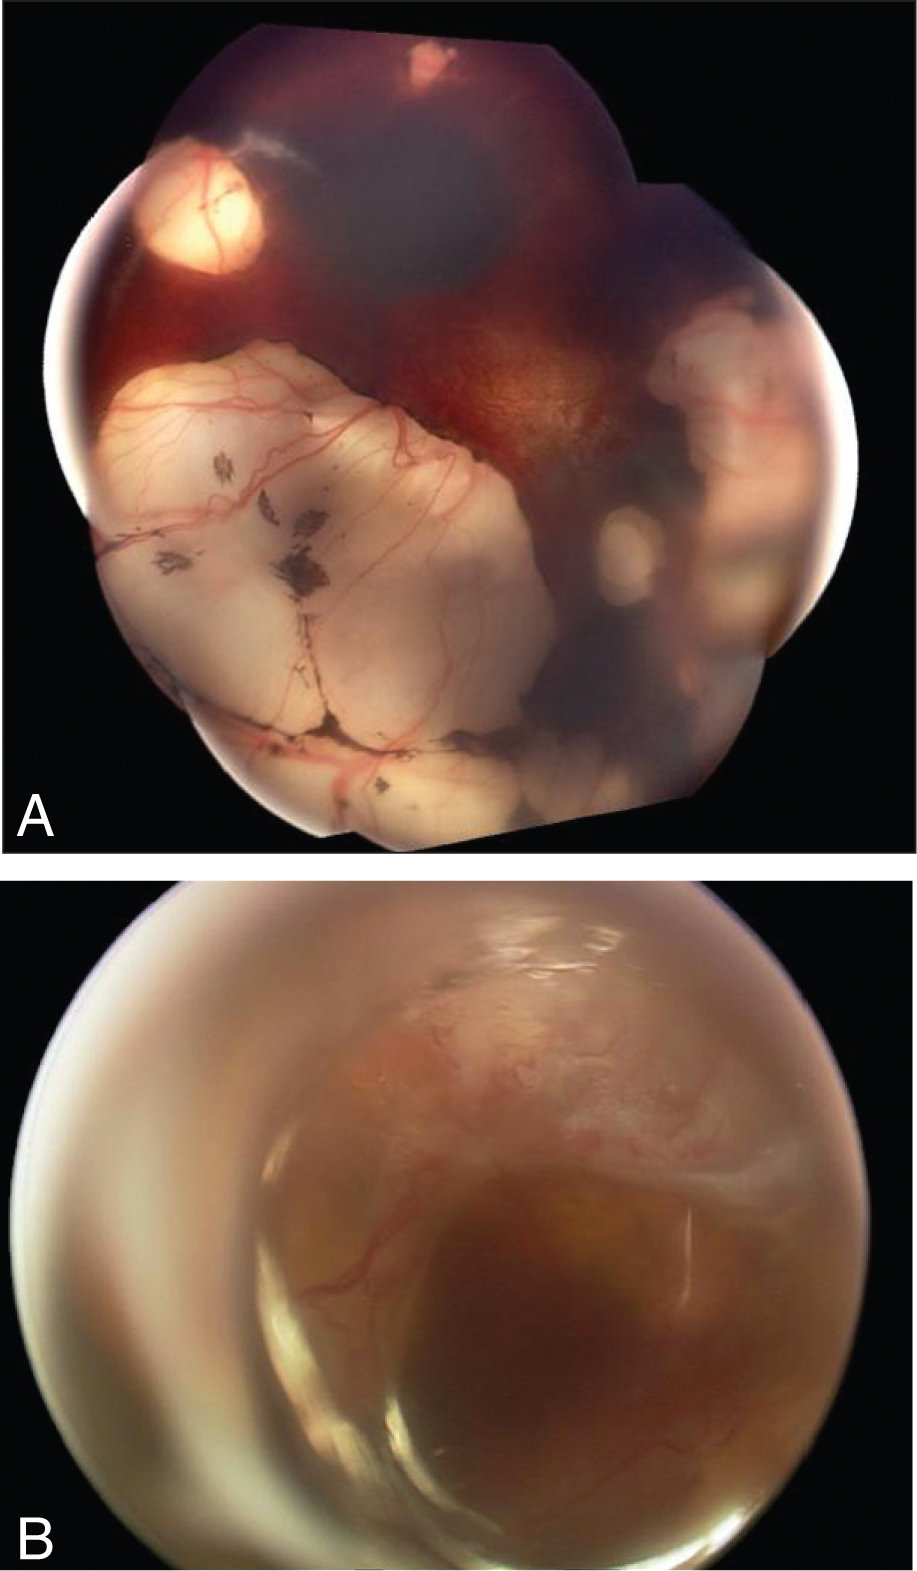 Fundus Photographs Showing the Changes in a Patient with Aicardi Syndrome. (A) Lacunae in the Superotemporal and Inferior Aspect of the Left Eye with a Large Coloboma in the Temporal Side and Severe Hypoplasia of the Optic Nerve Head. (B) In the Right Eye, a Large Superior Retinal Detachment Was Noted.